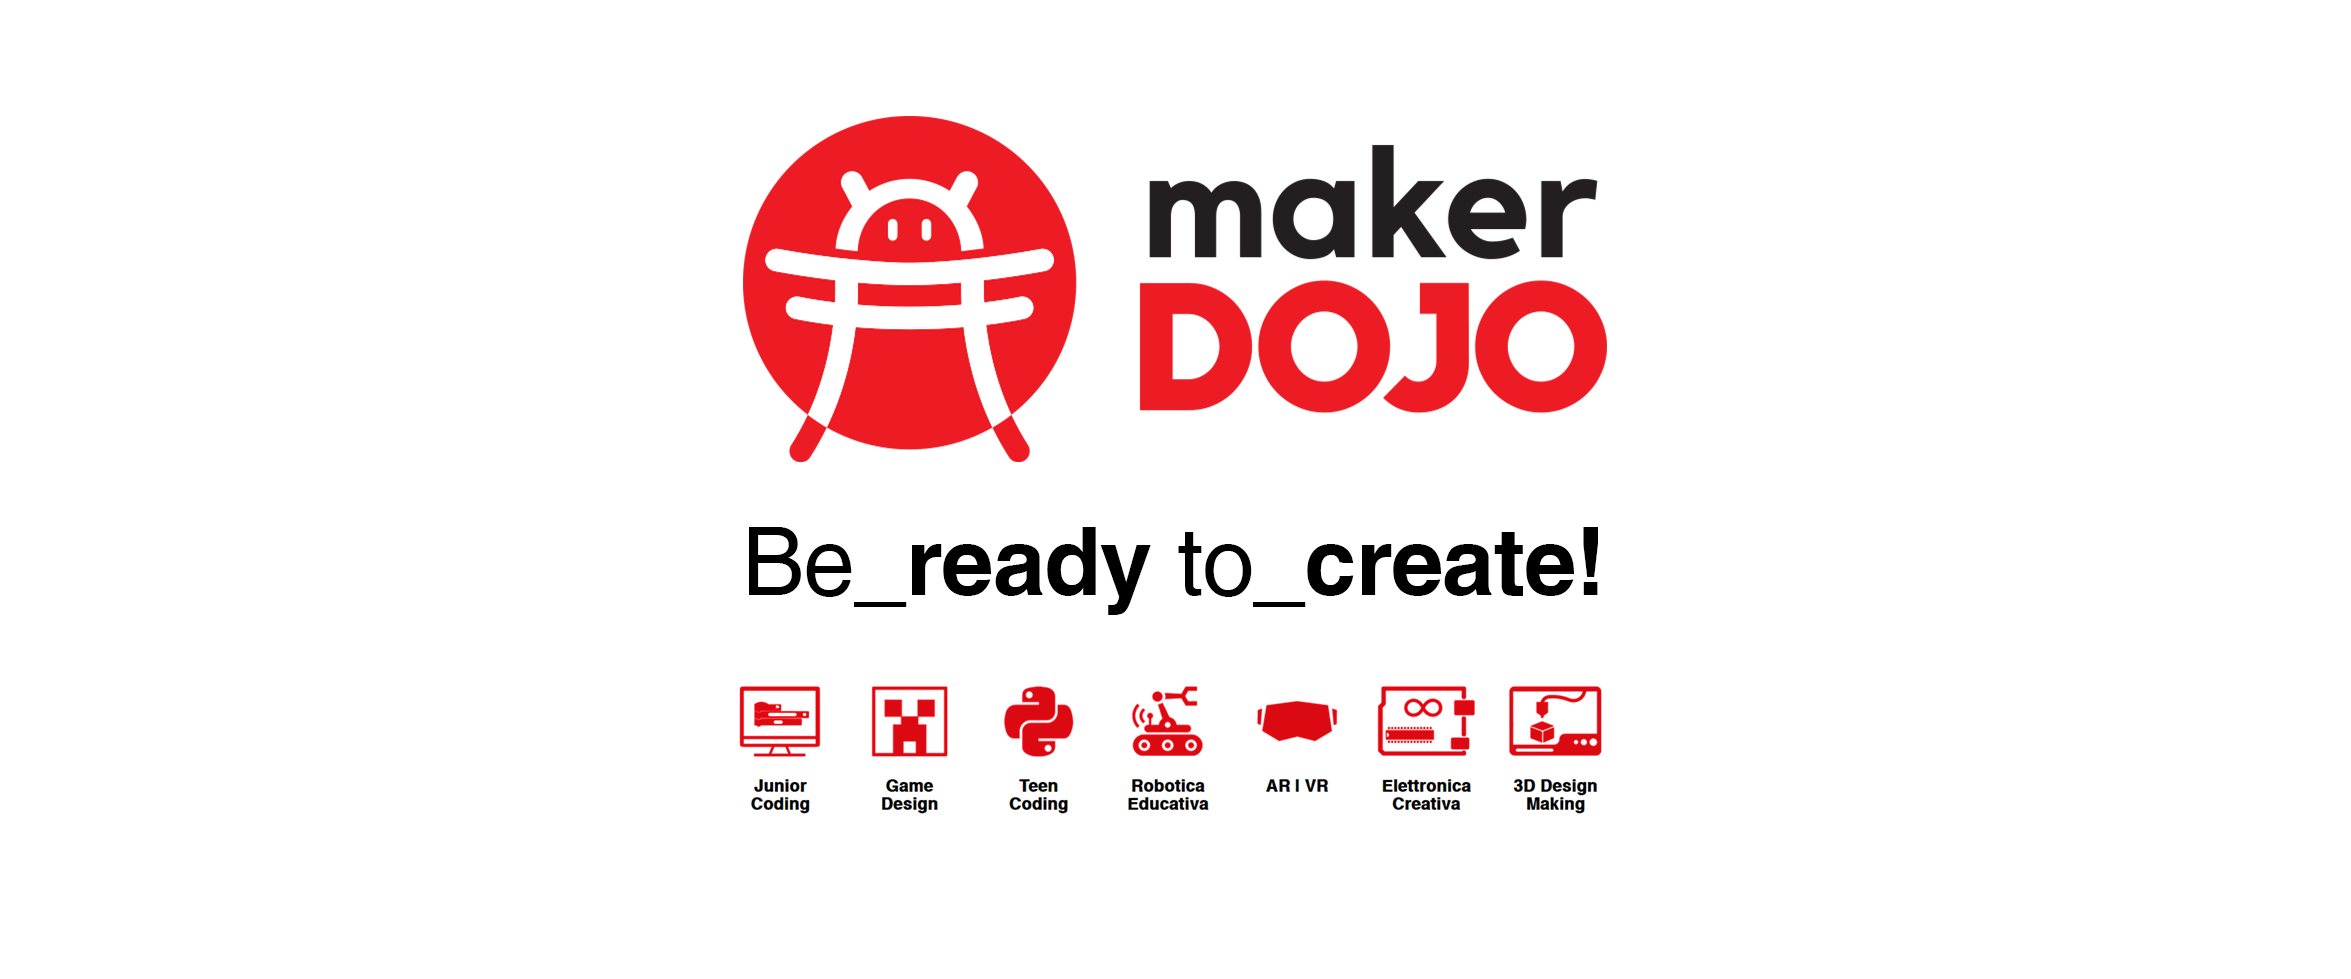 MakerDojo: Be ready to create!